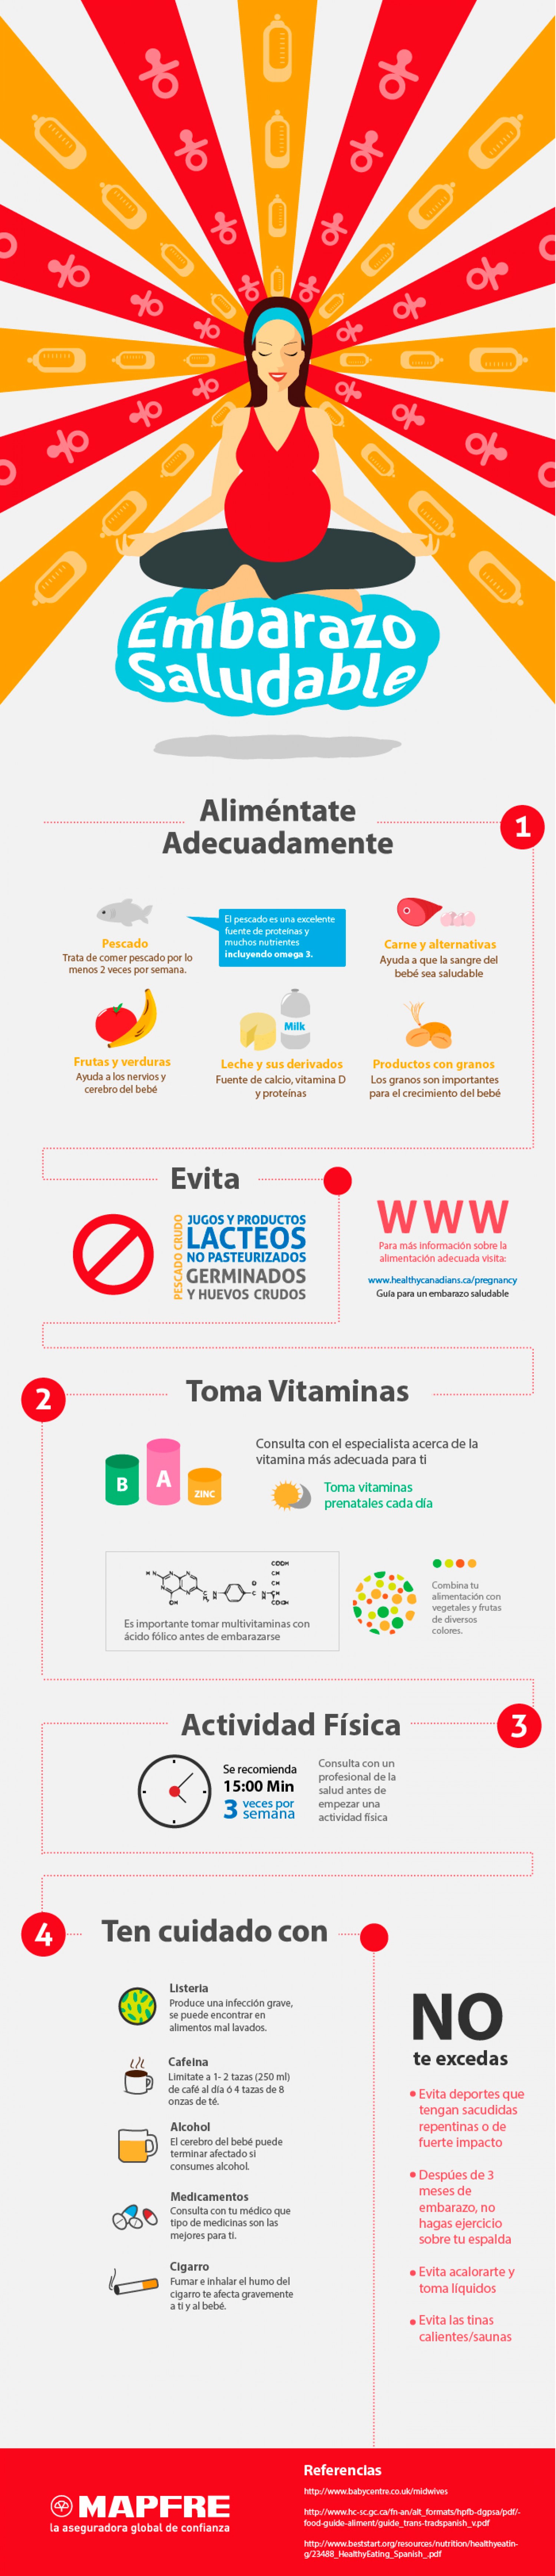 Embarazo Saludable Infographic